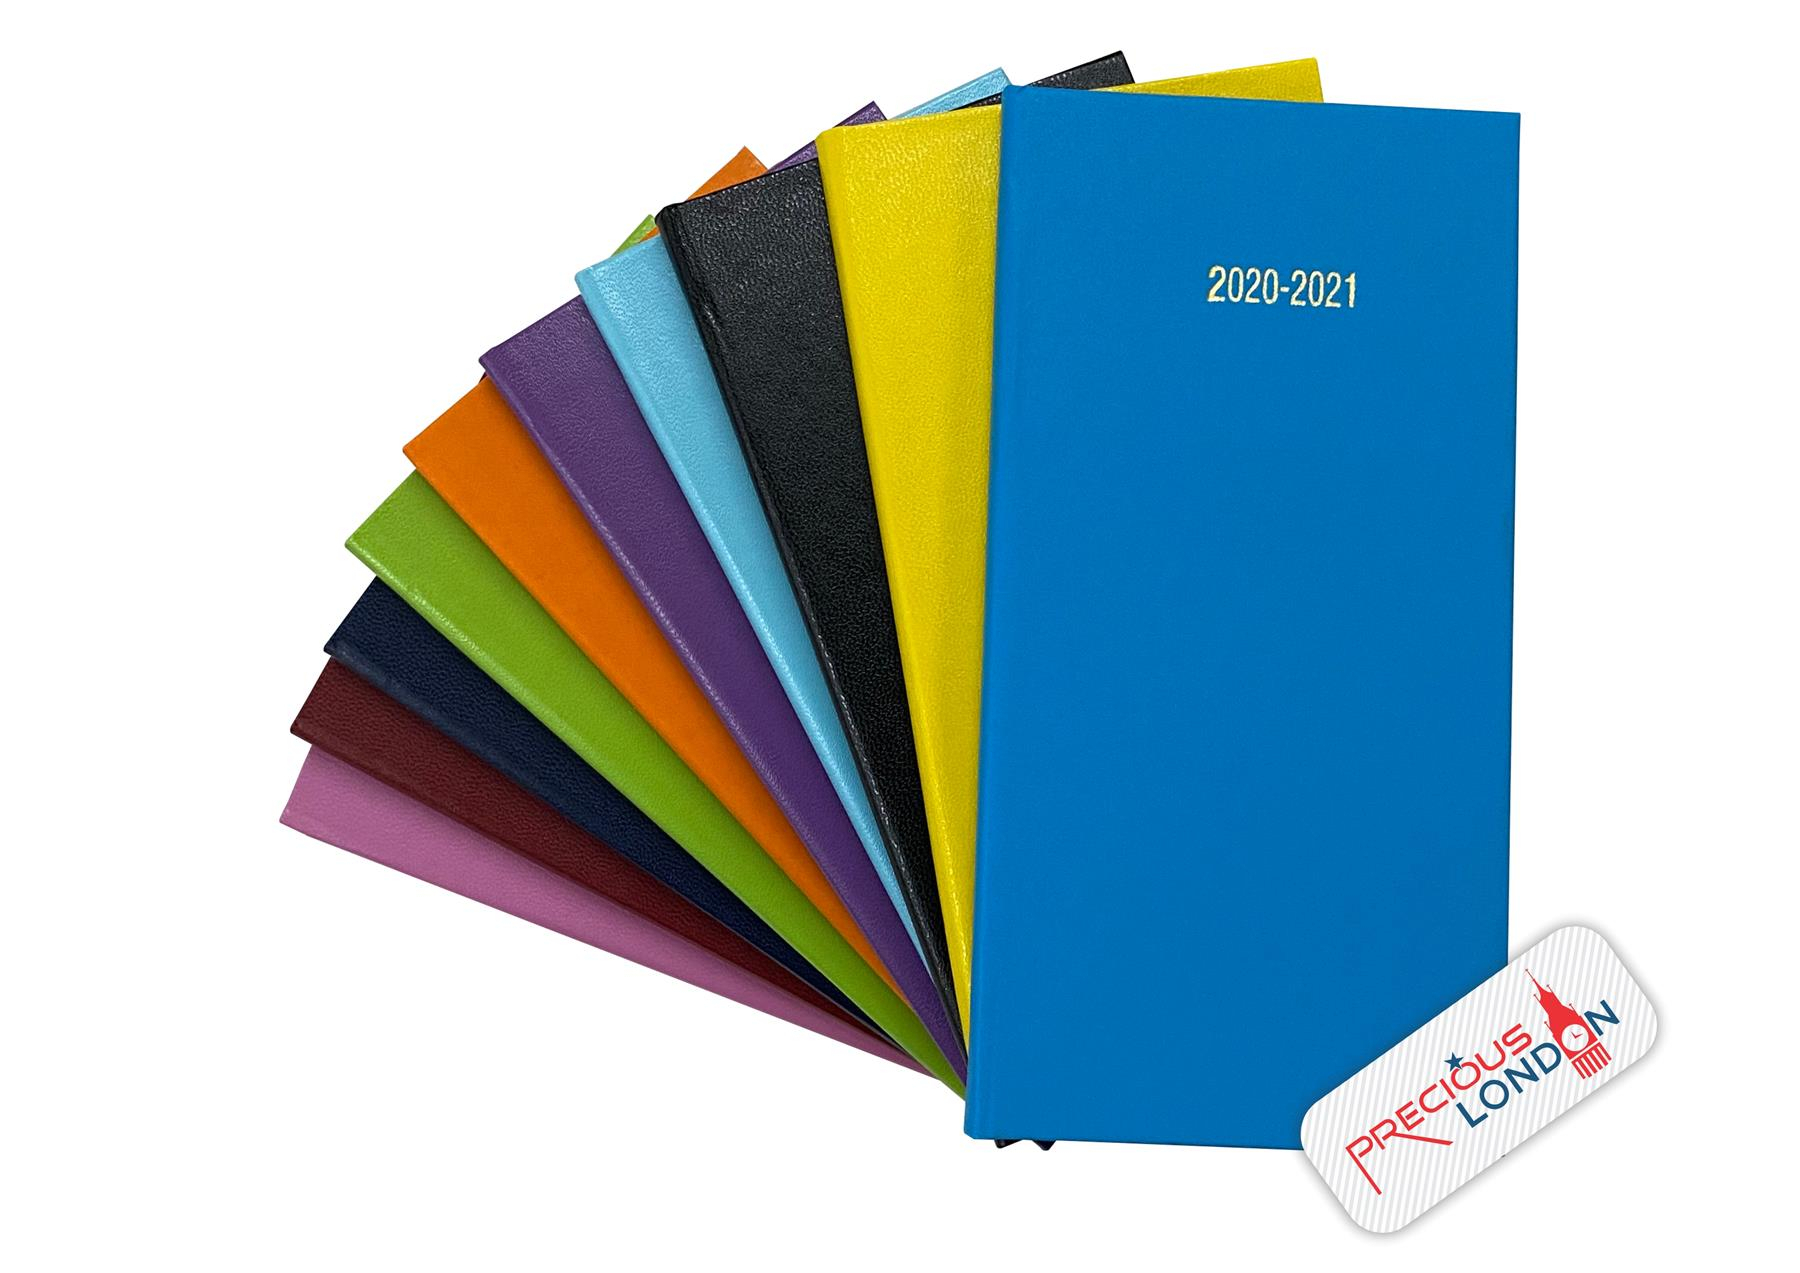 Details About 2020-2021 Academic Mid Year Slim Diary 2 Two Week To View 18  Month Planner Diary intended for Diary 2021: Weekly And Monthly Year